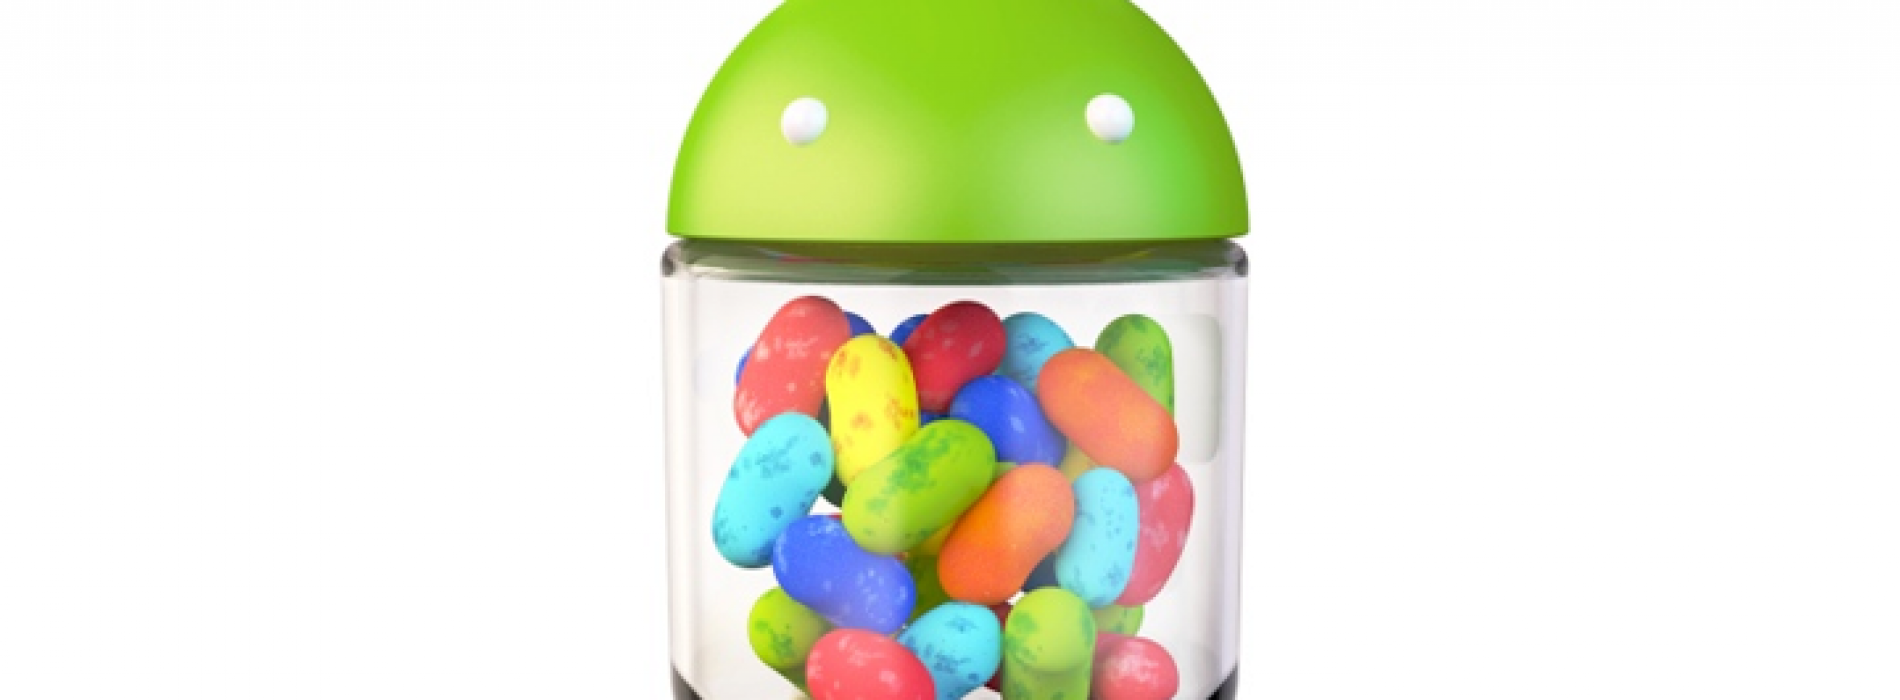 Motorola Droid Bionic is Verizon's latest to join Jelly Bean club